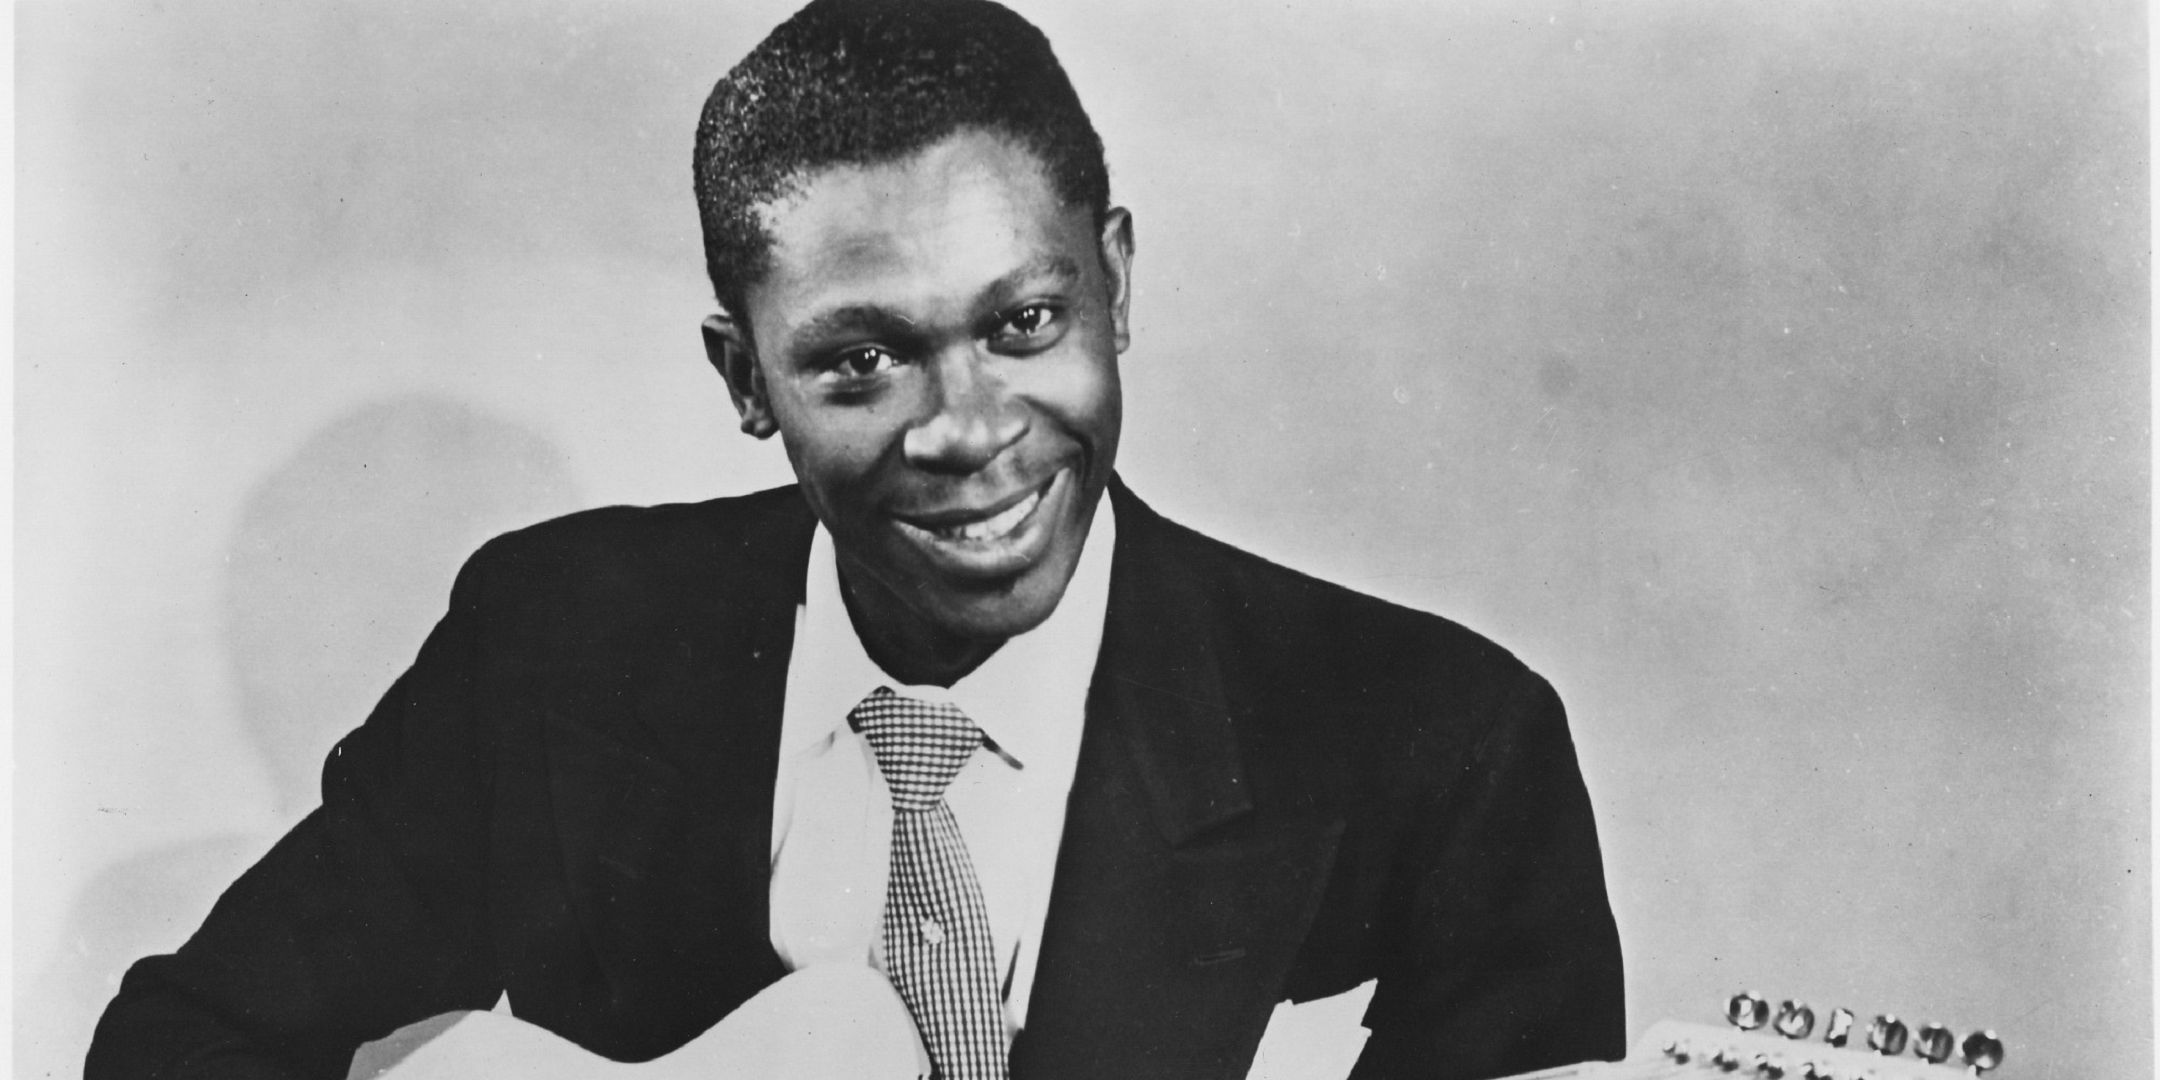 an biography of riley b king Riley b king better known as bb king was born on september 16th 1925 to a family of sharecropping farmers near a small town named itta bena in the mississippi delta.